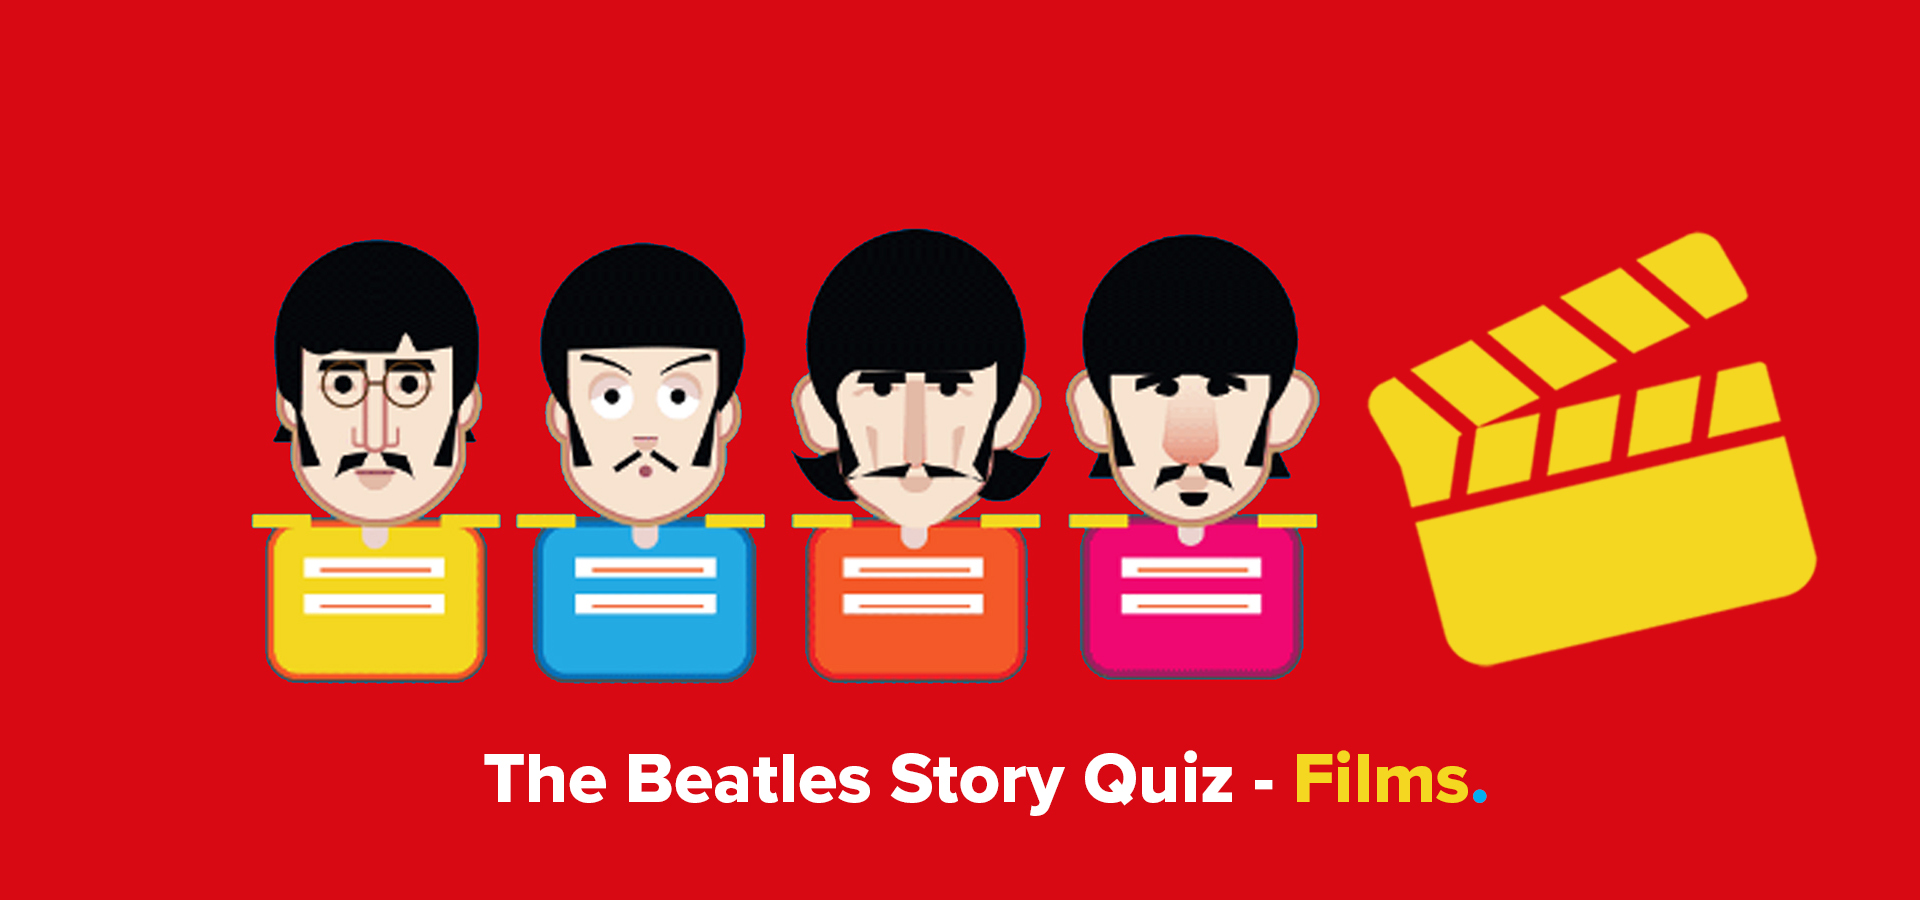 The Beatles Films Quiz